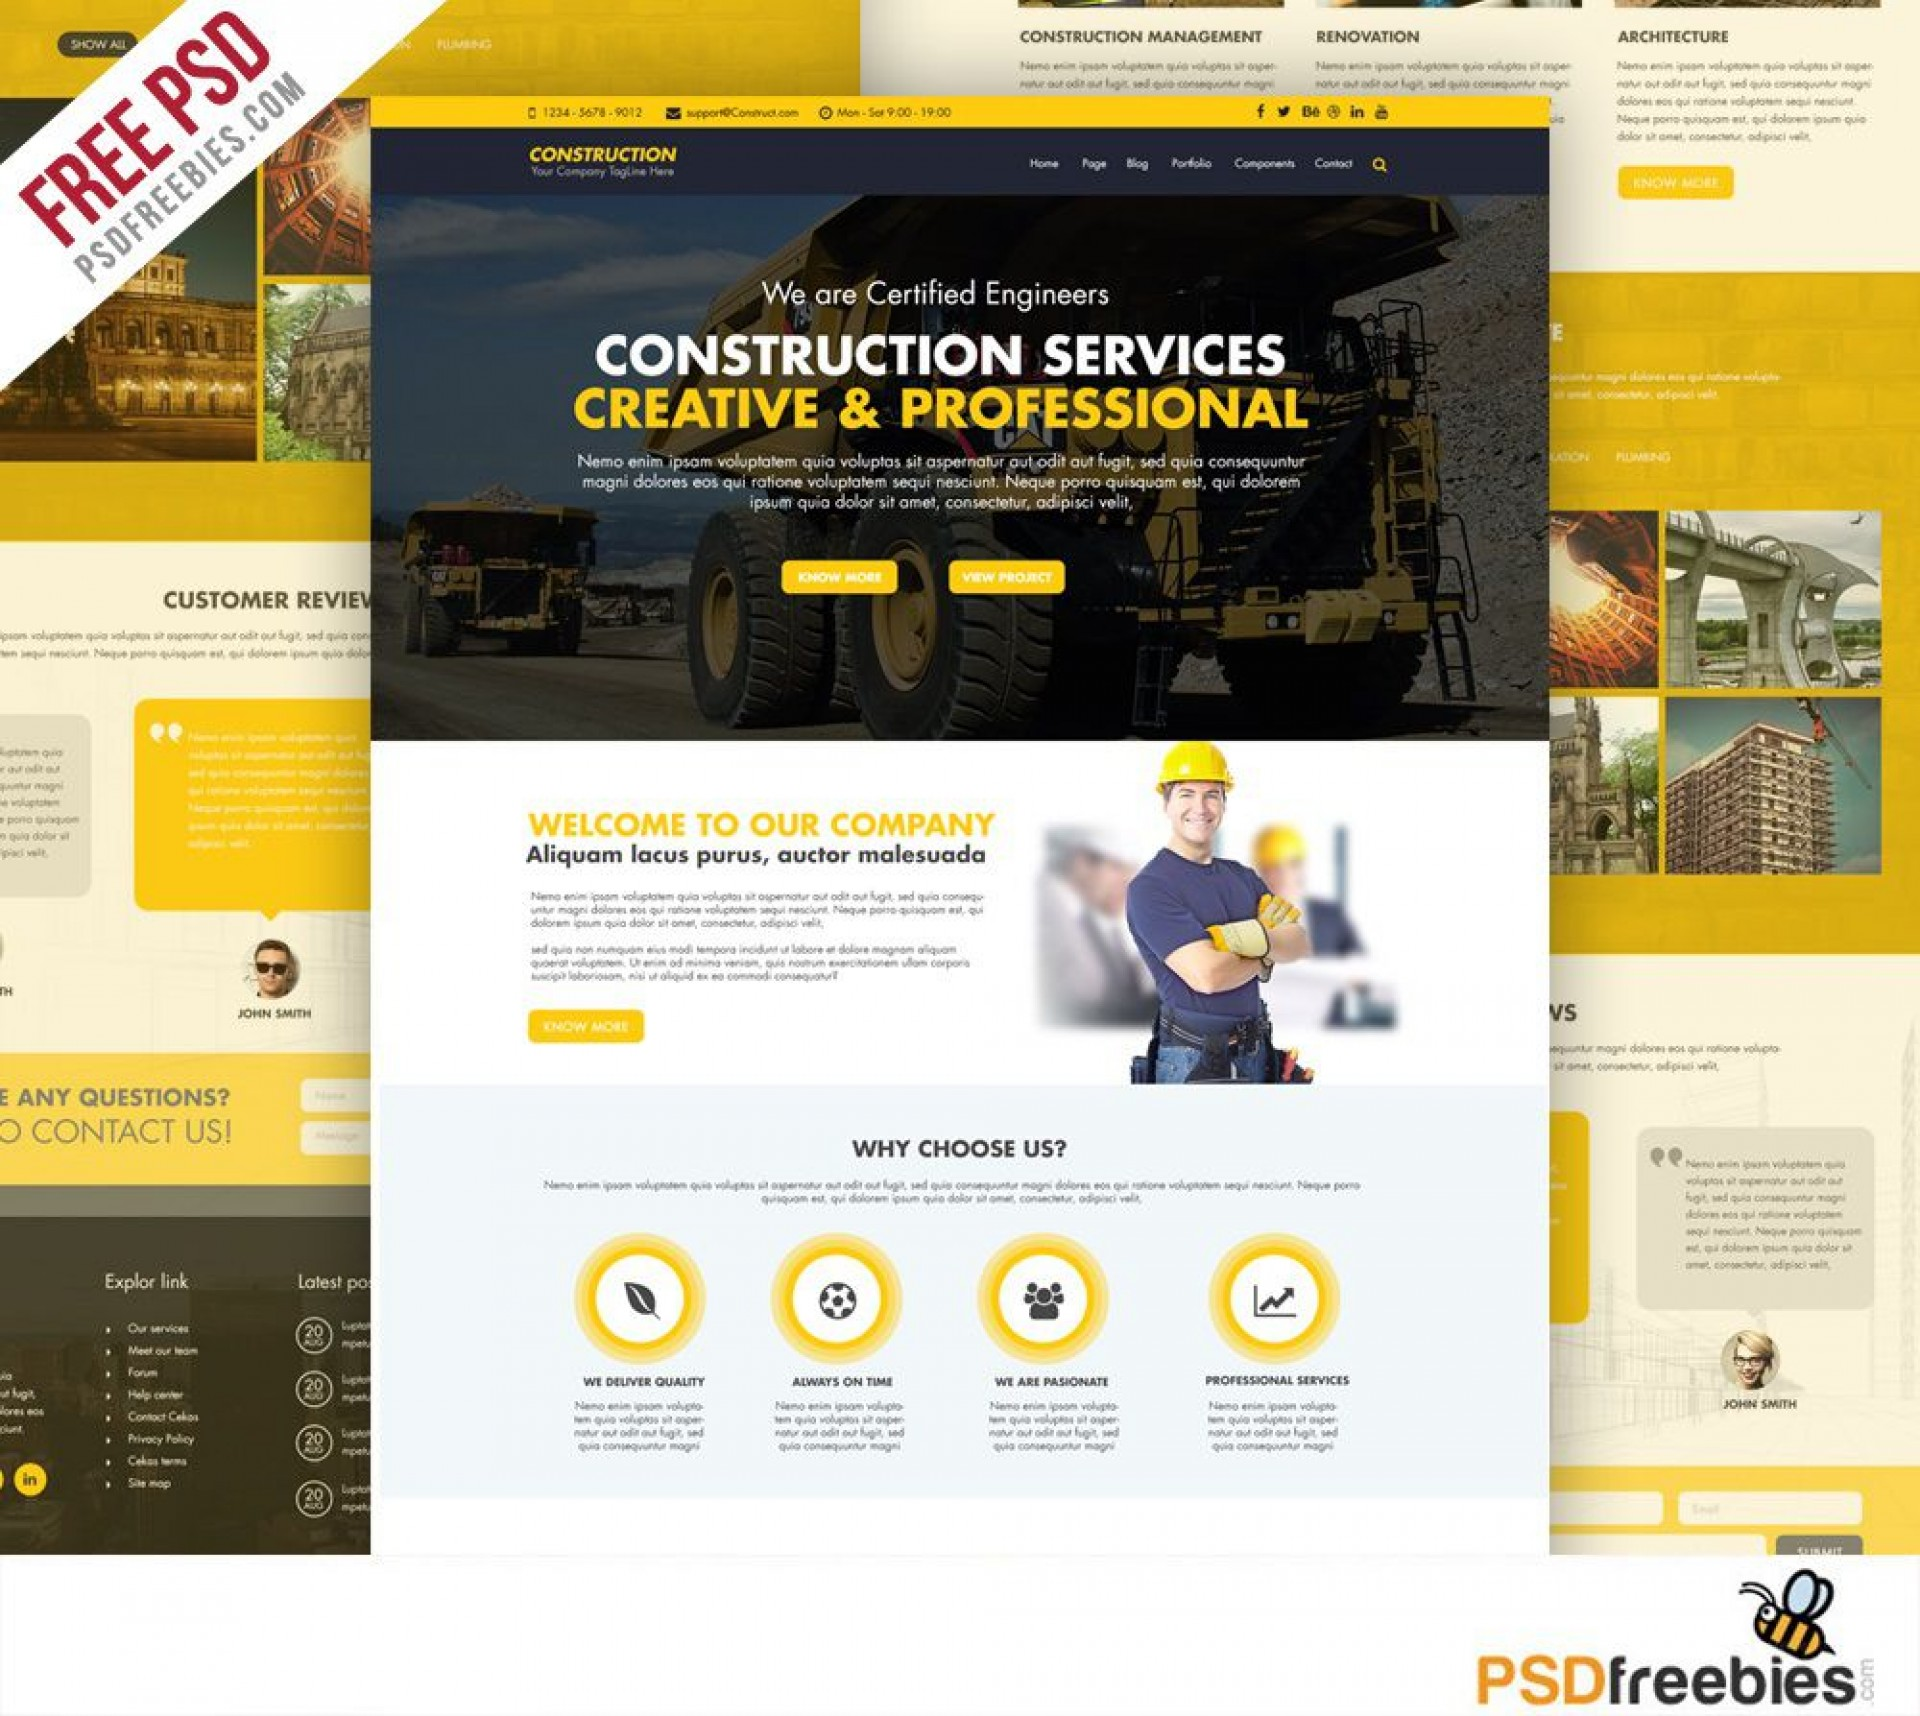 005 Fearsome Website Template Html Free Download Inspiration  Indian School Software Company Spice1920